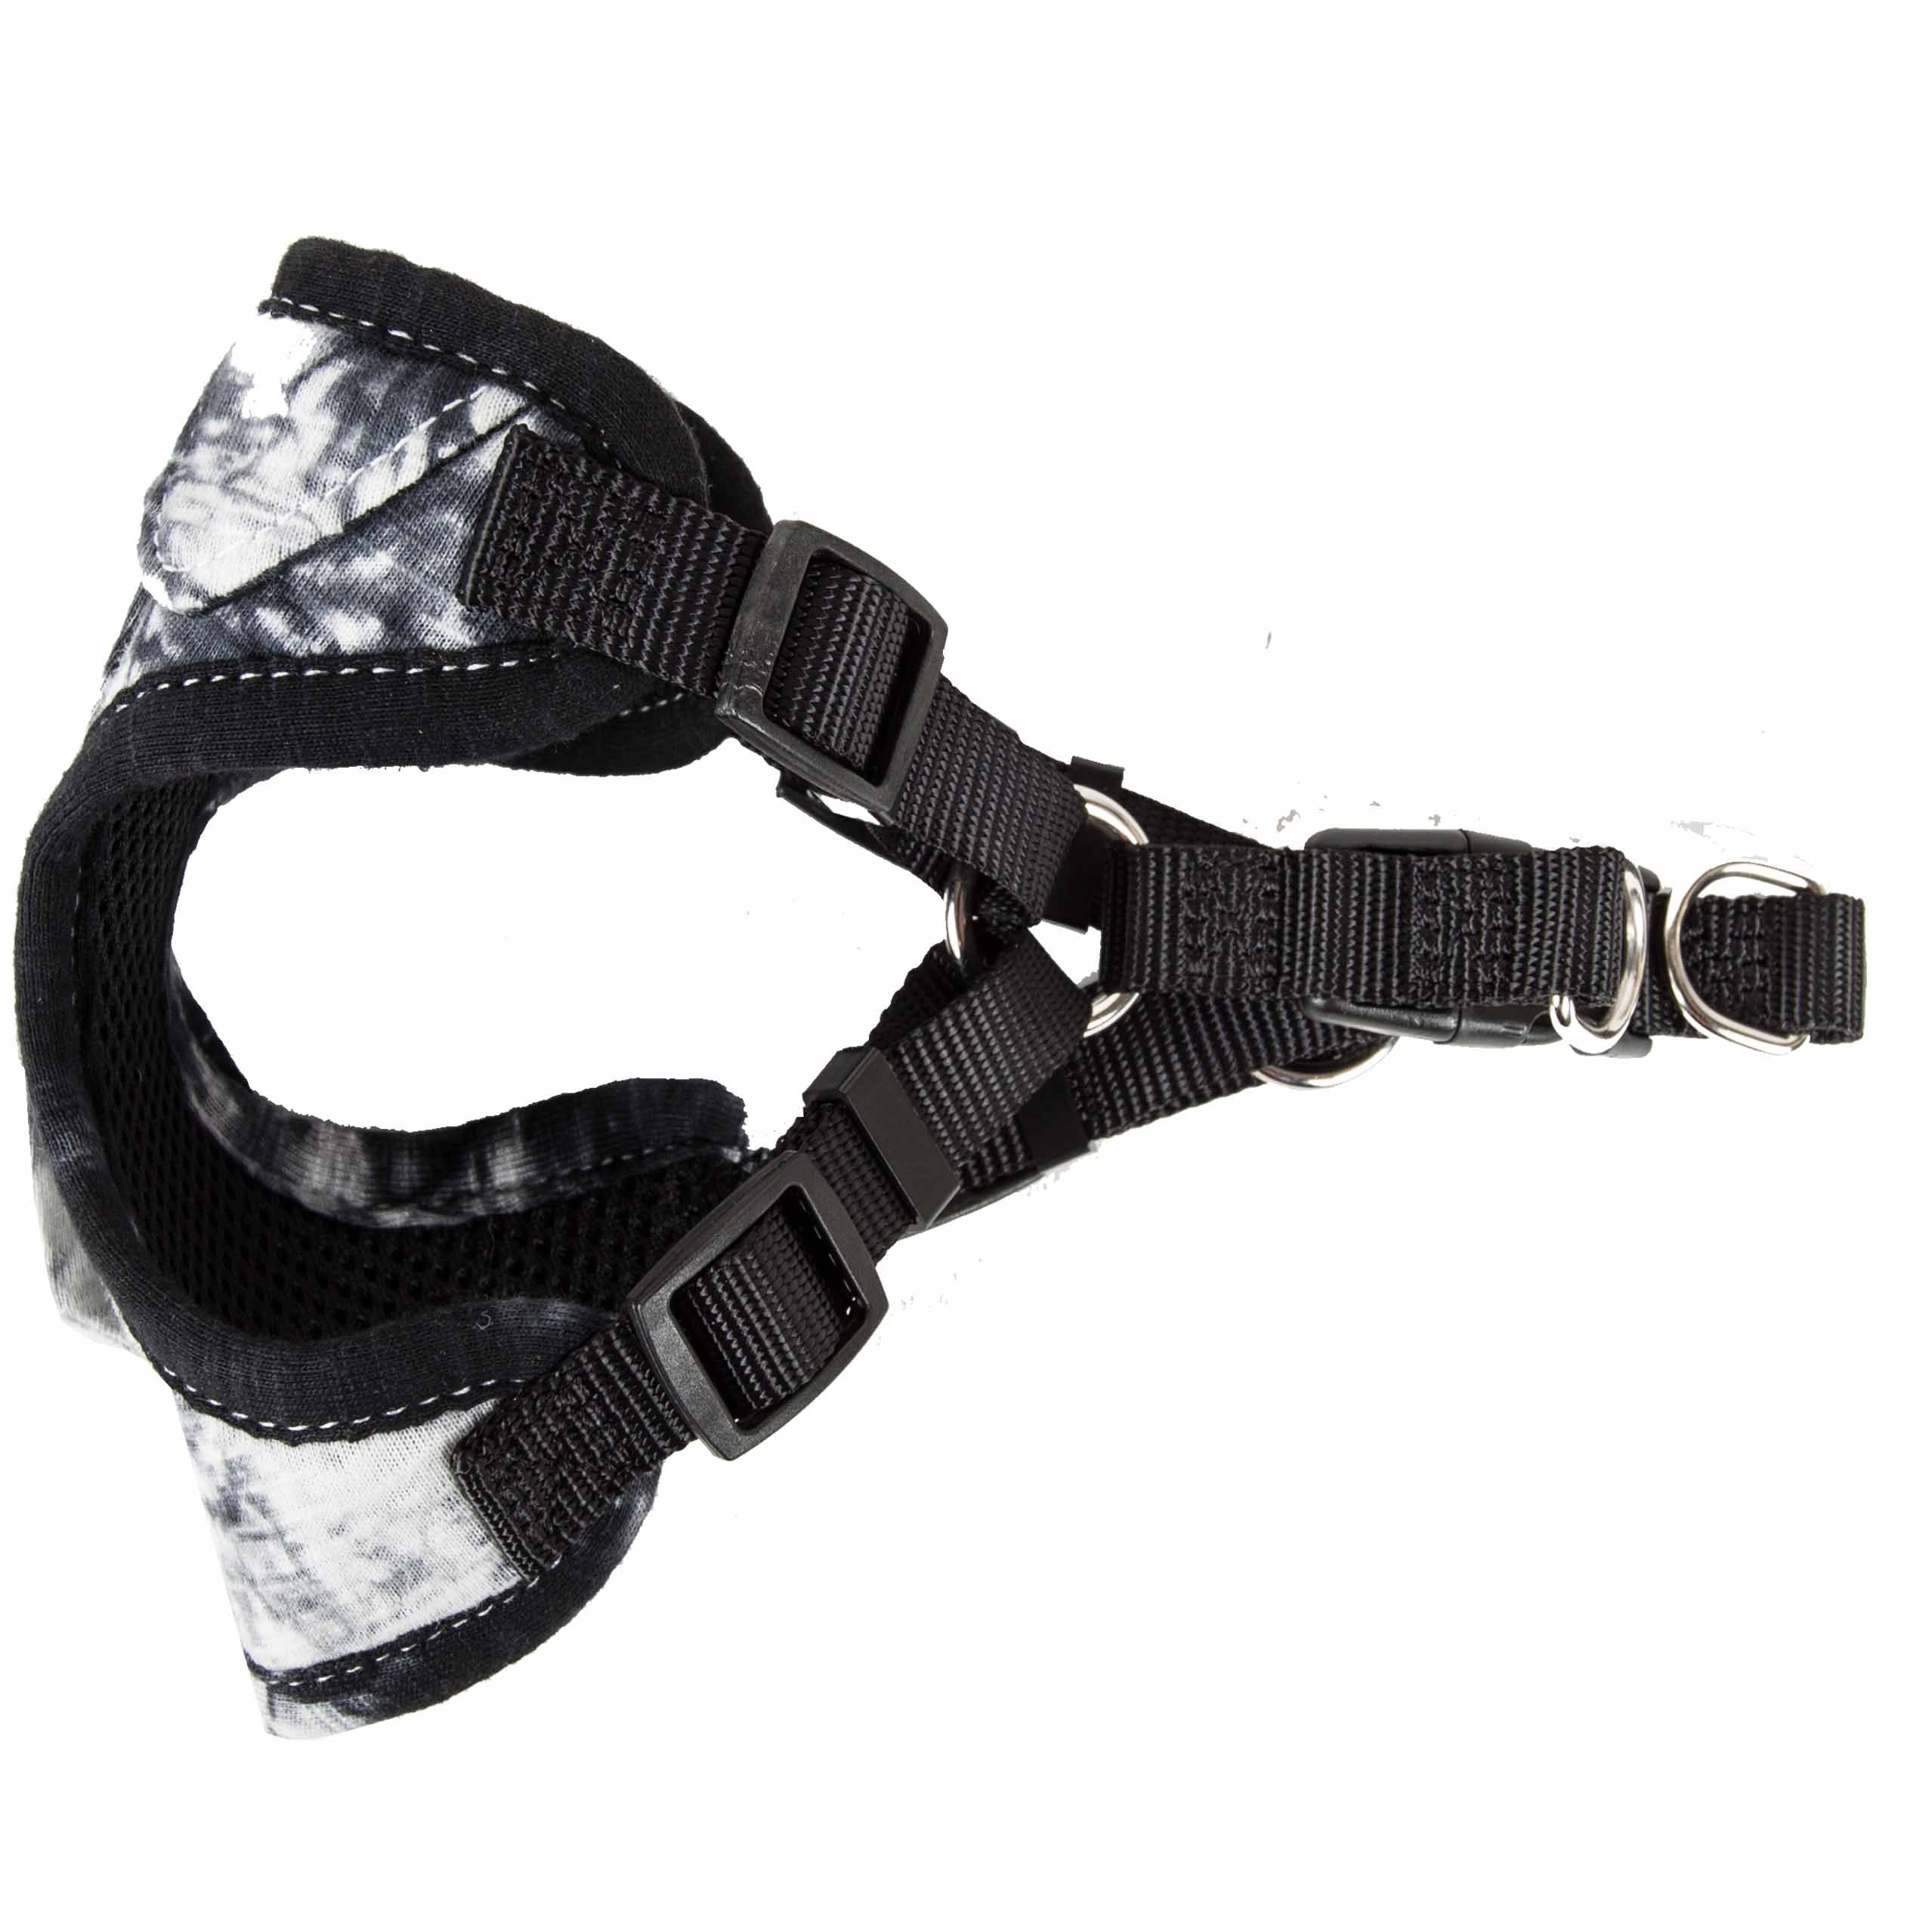 Pet Life ® 'Bonatied' Mesh Reversible And Breathable Adjustable Dog Harness W/ Designer Neck Tie